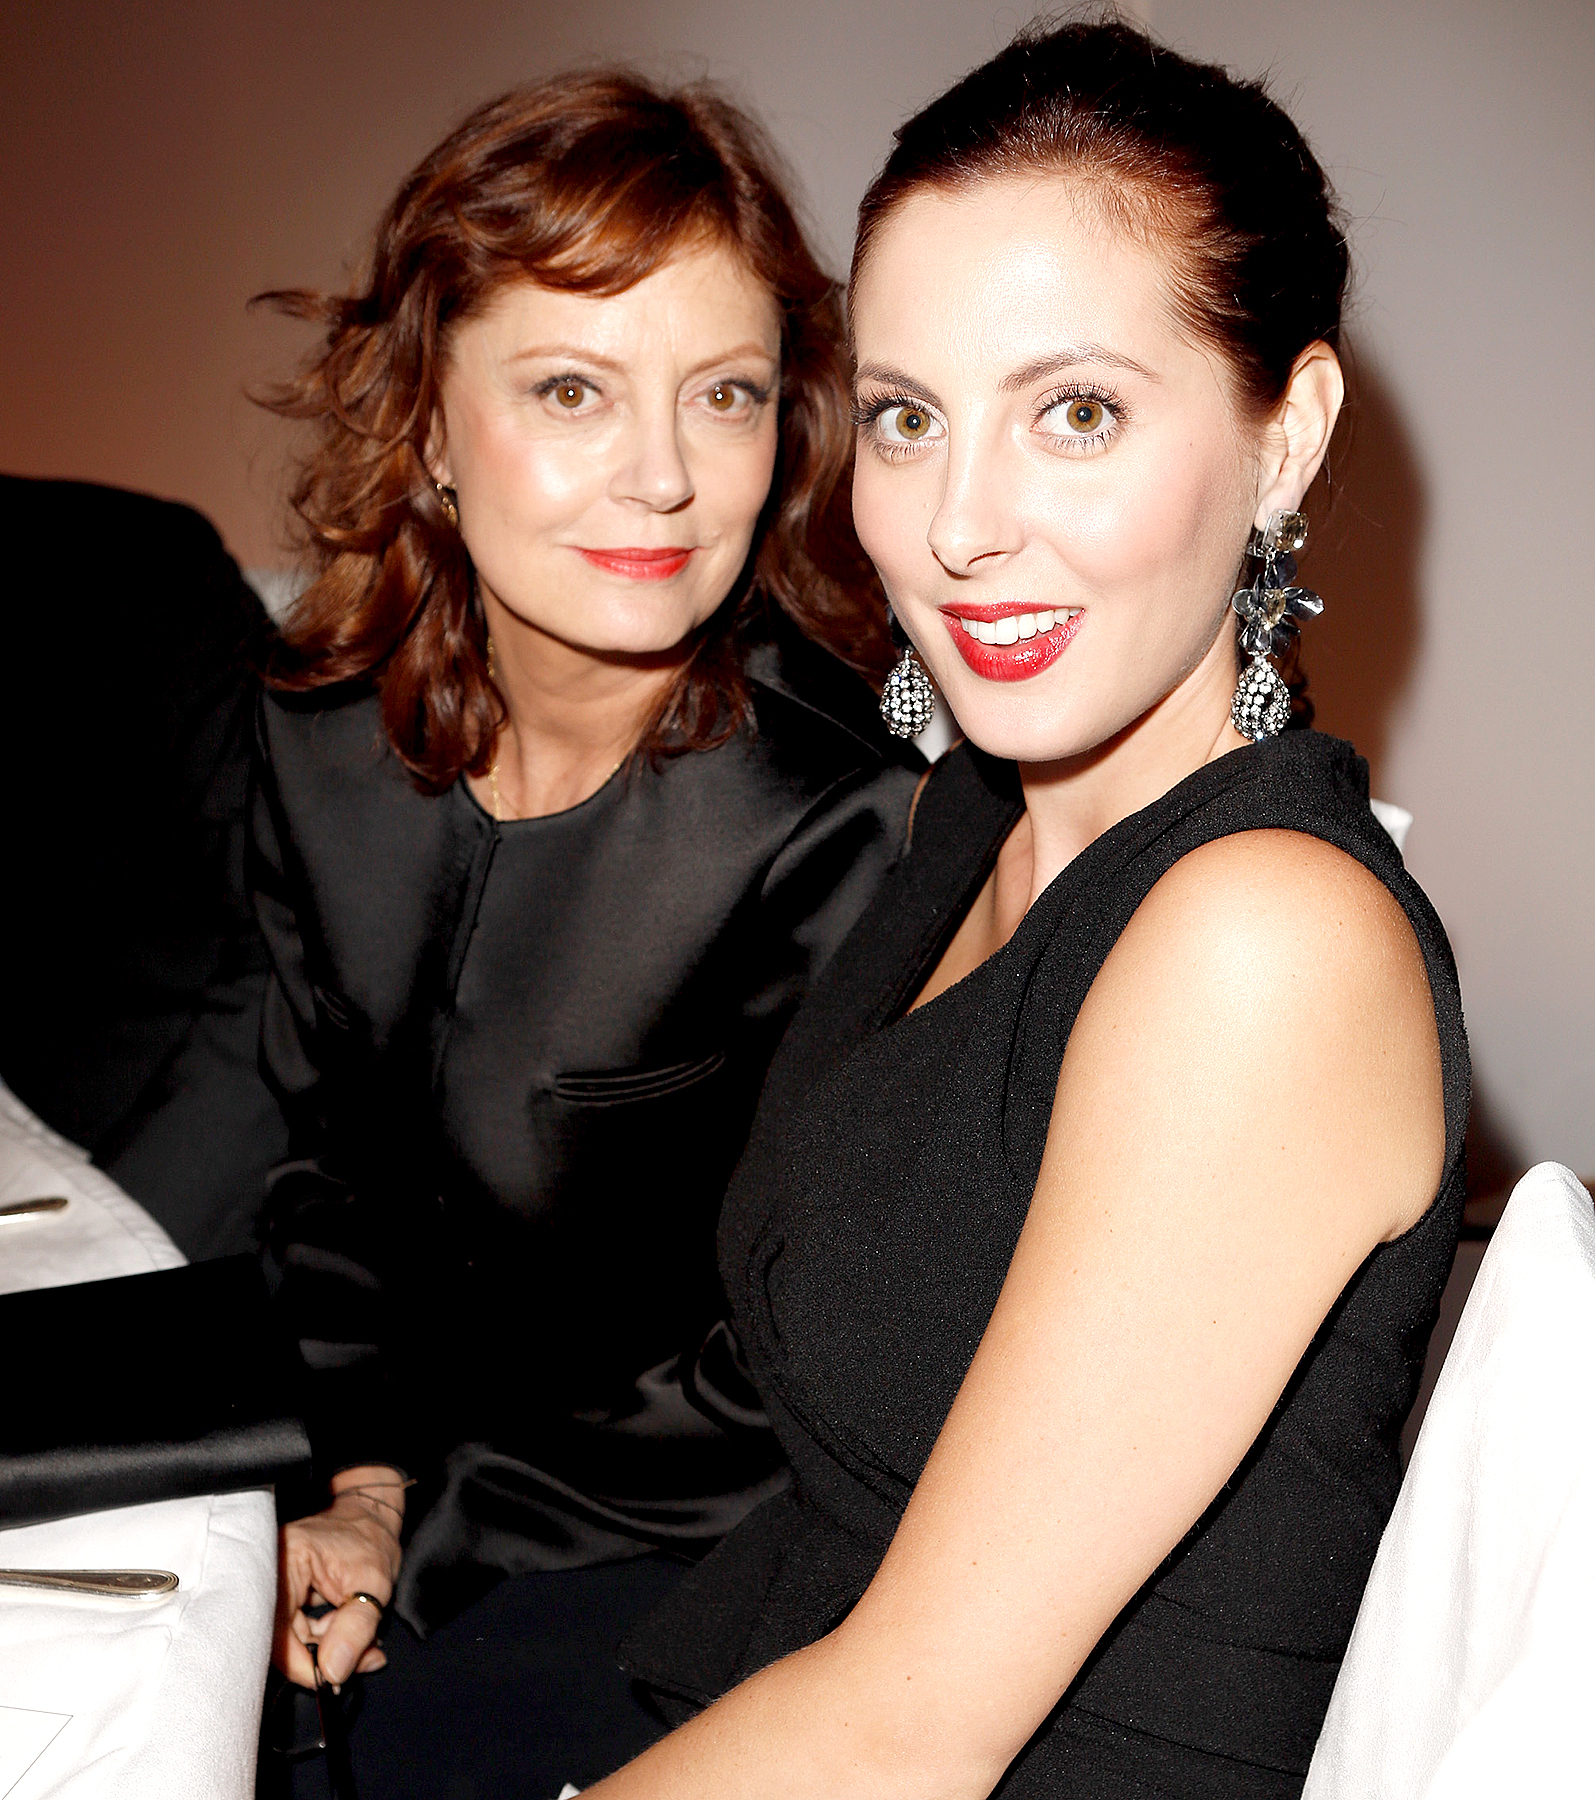 Susan Sarandon and Eva Amurri attend Elle's 19th Annual Women In Hollywood Celebration at the Four Seasons Hotel on October 15, 2012 in Beverly Hills, California.